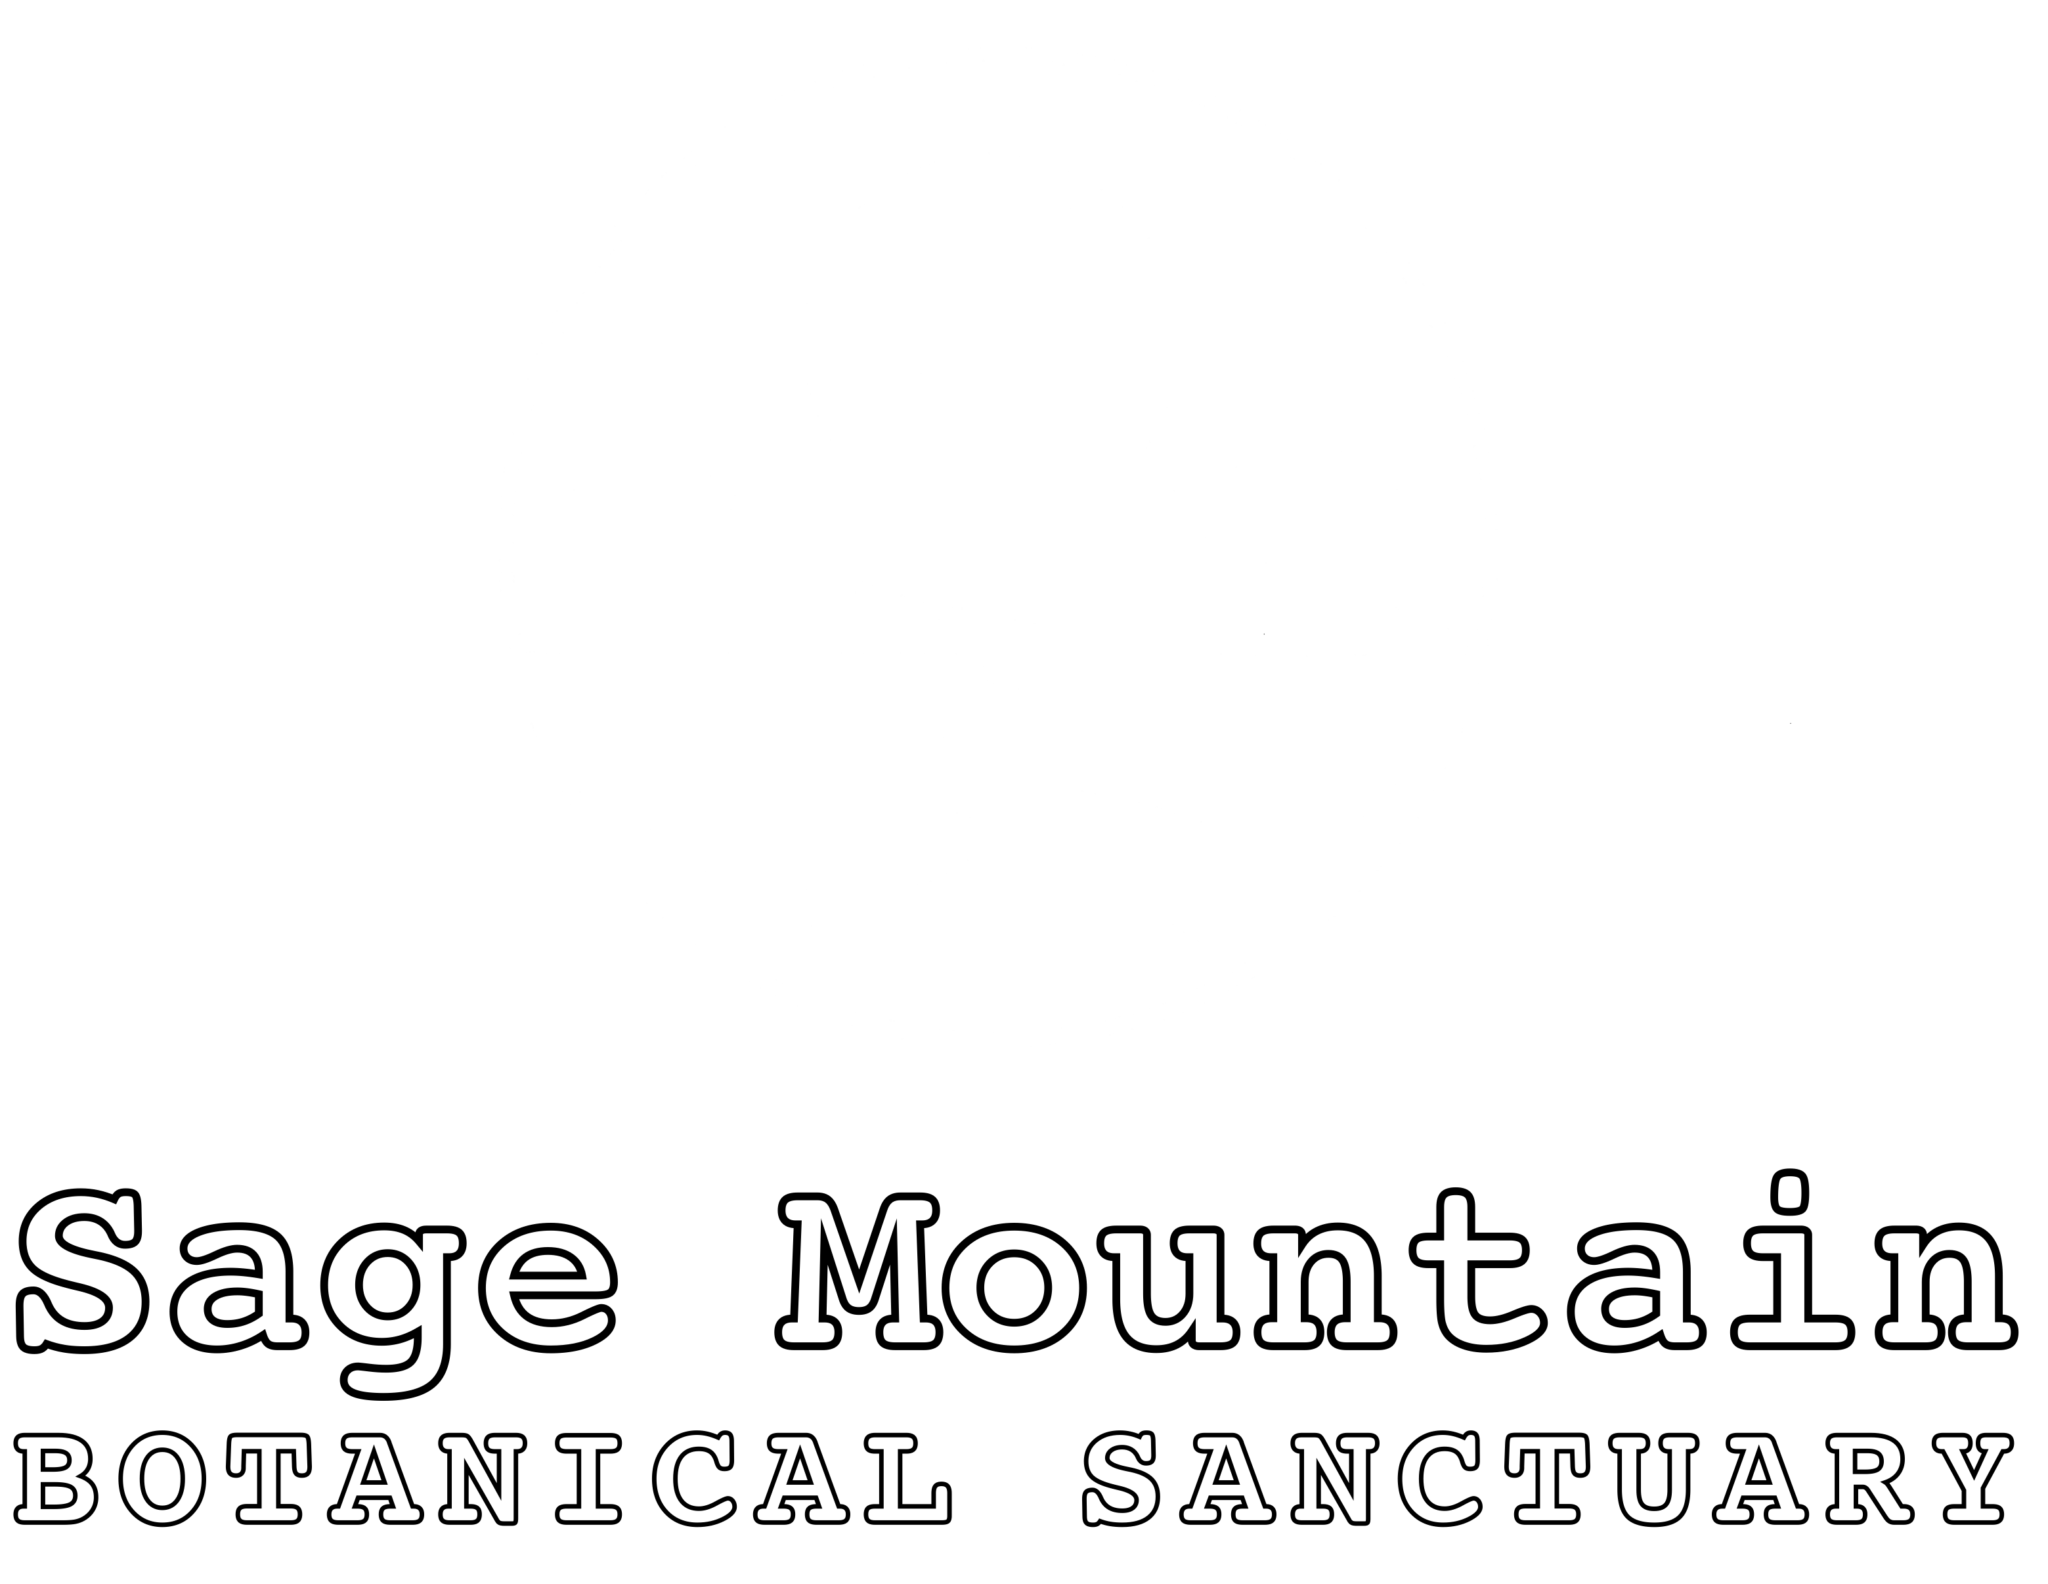 Sage Mountain Botanical Sanctuary